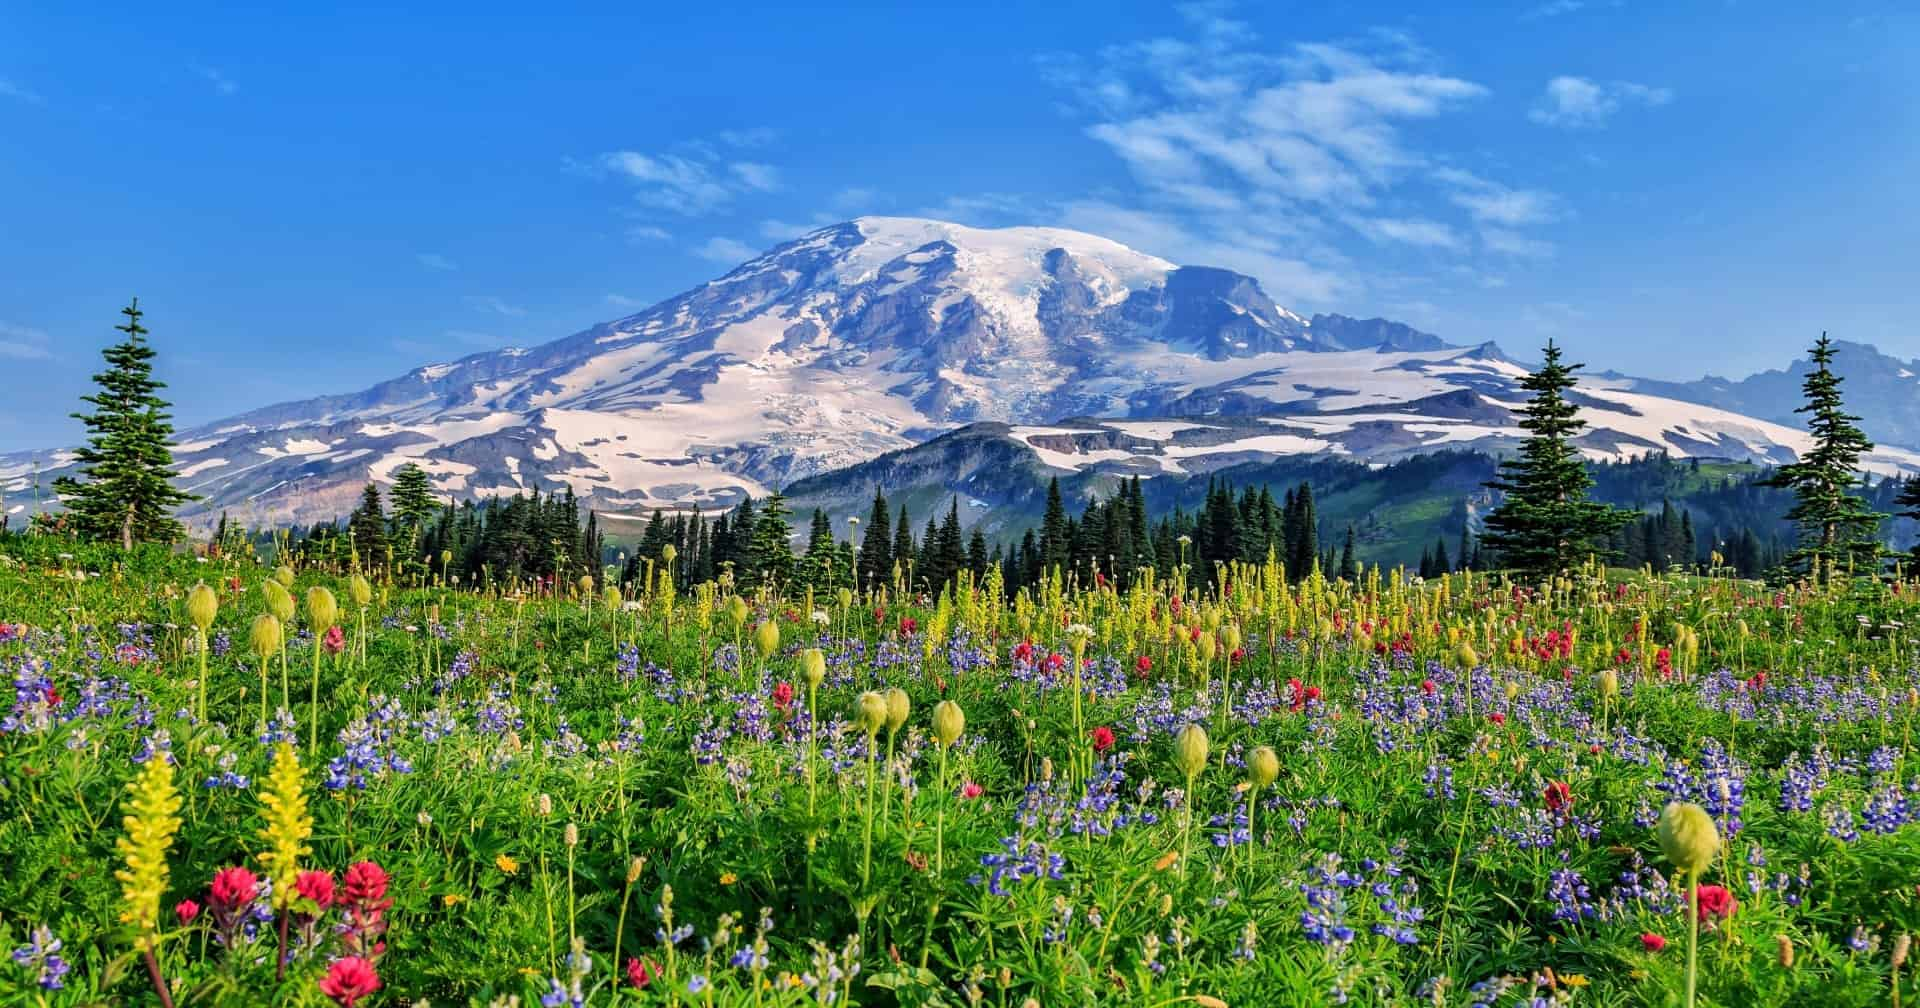 Wildflowers at Mount Rainier Washington State USA